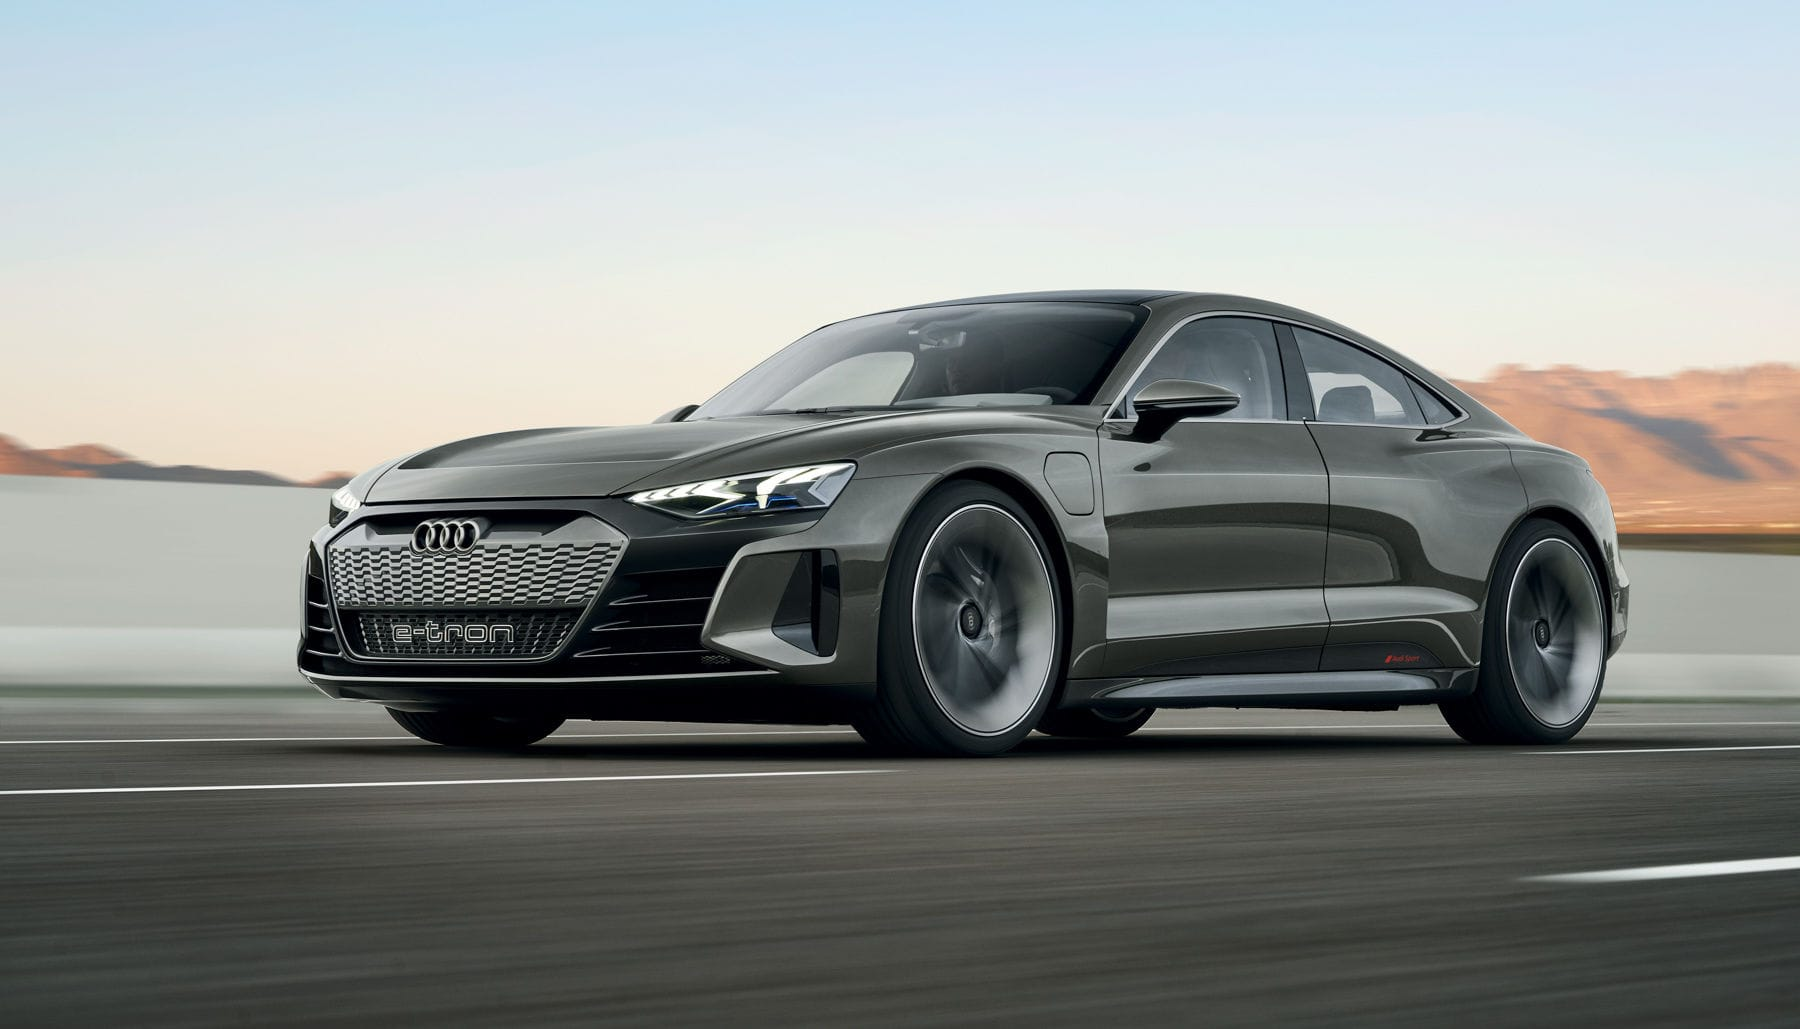 Audi's pure electric E-Tron GT is beautiful and fast